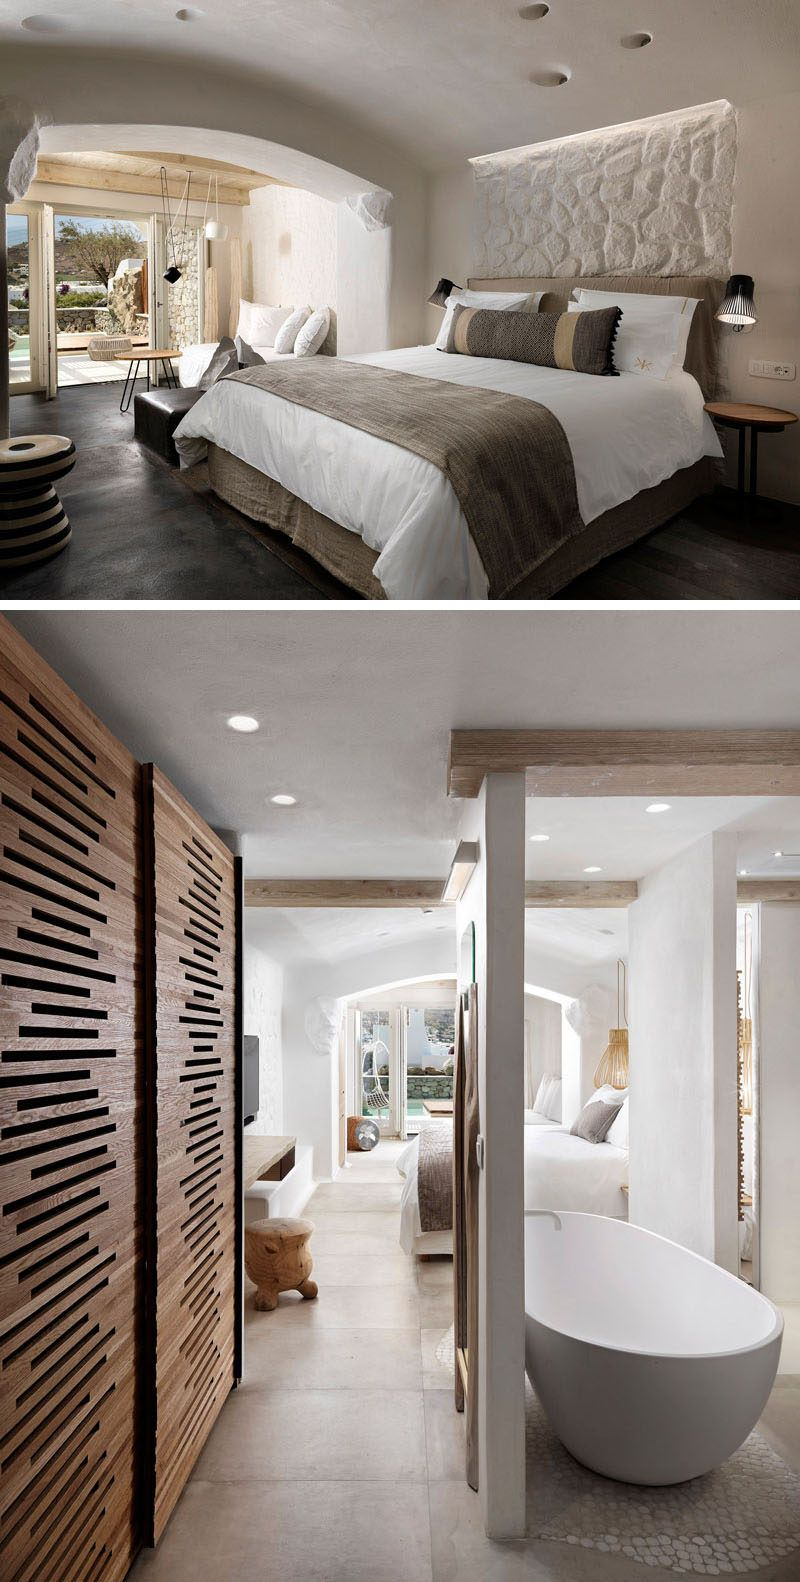 Zimmer im griechischen stil kensho a new boutique design hotel has opened its doors in mykonos